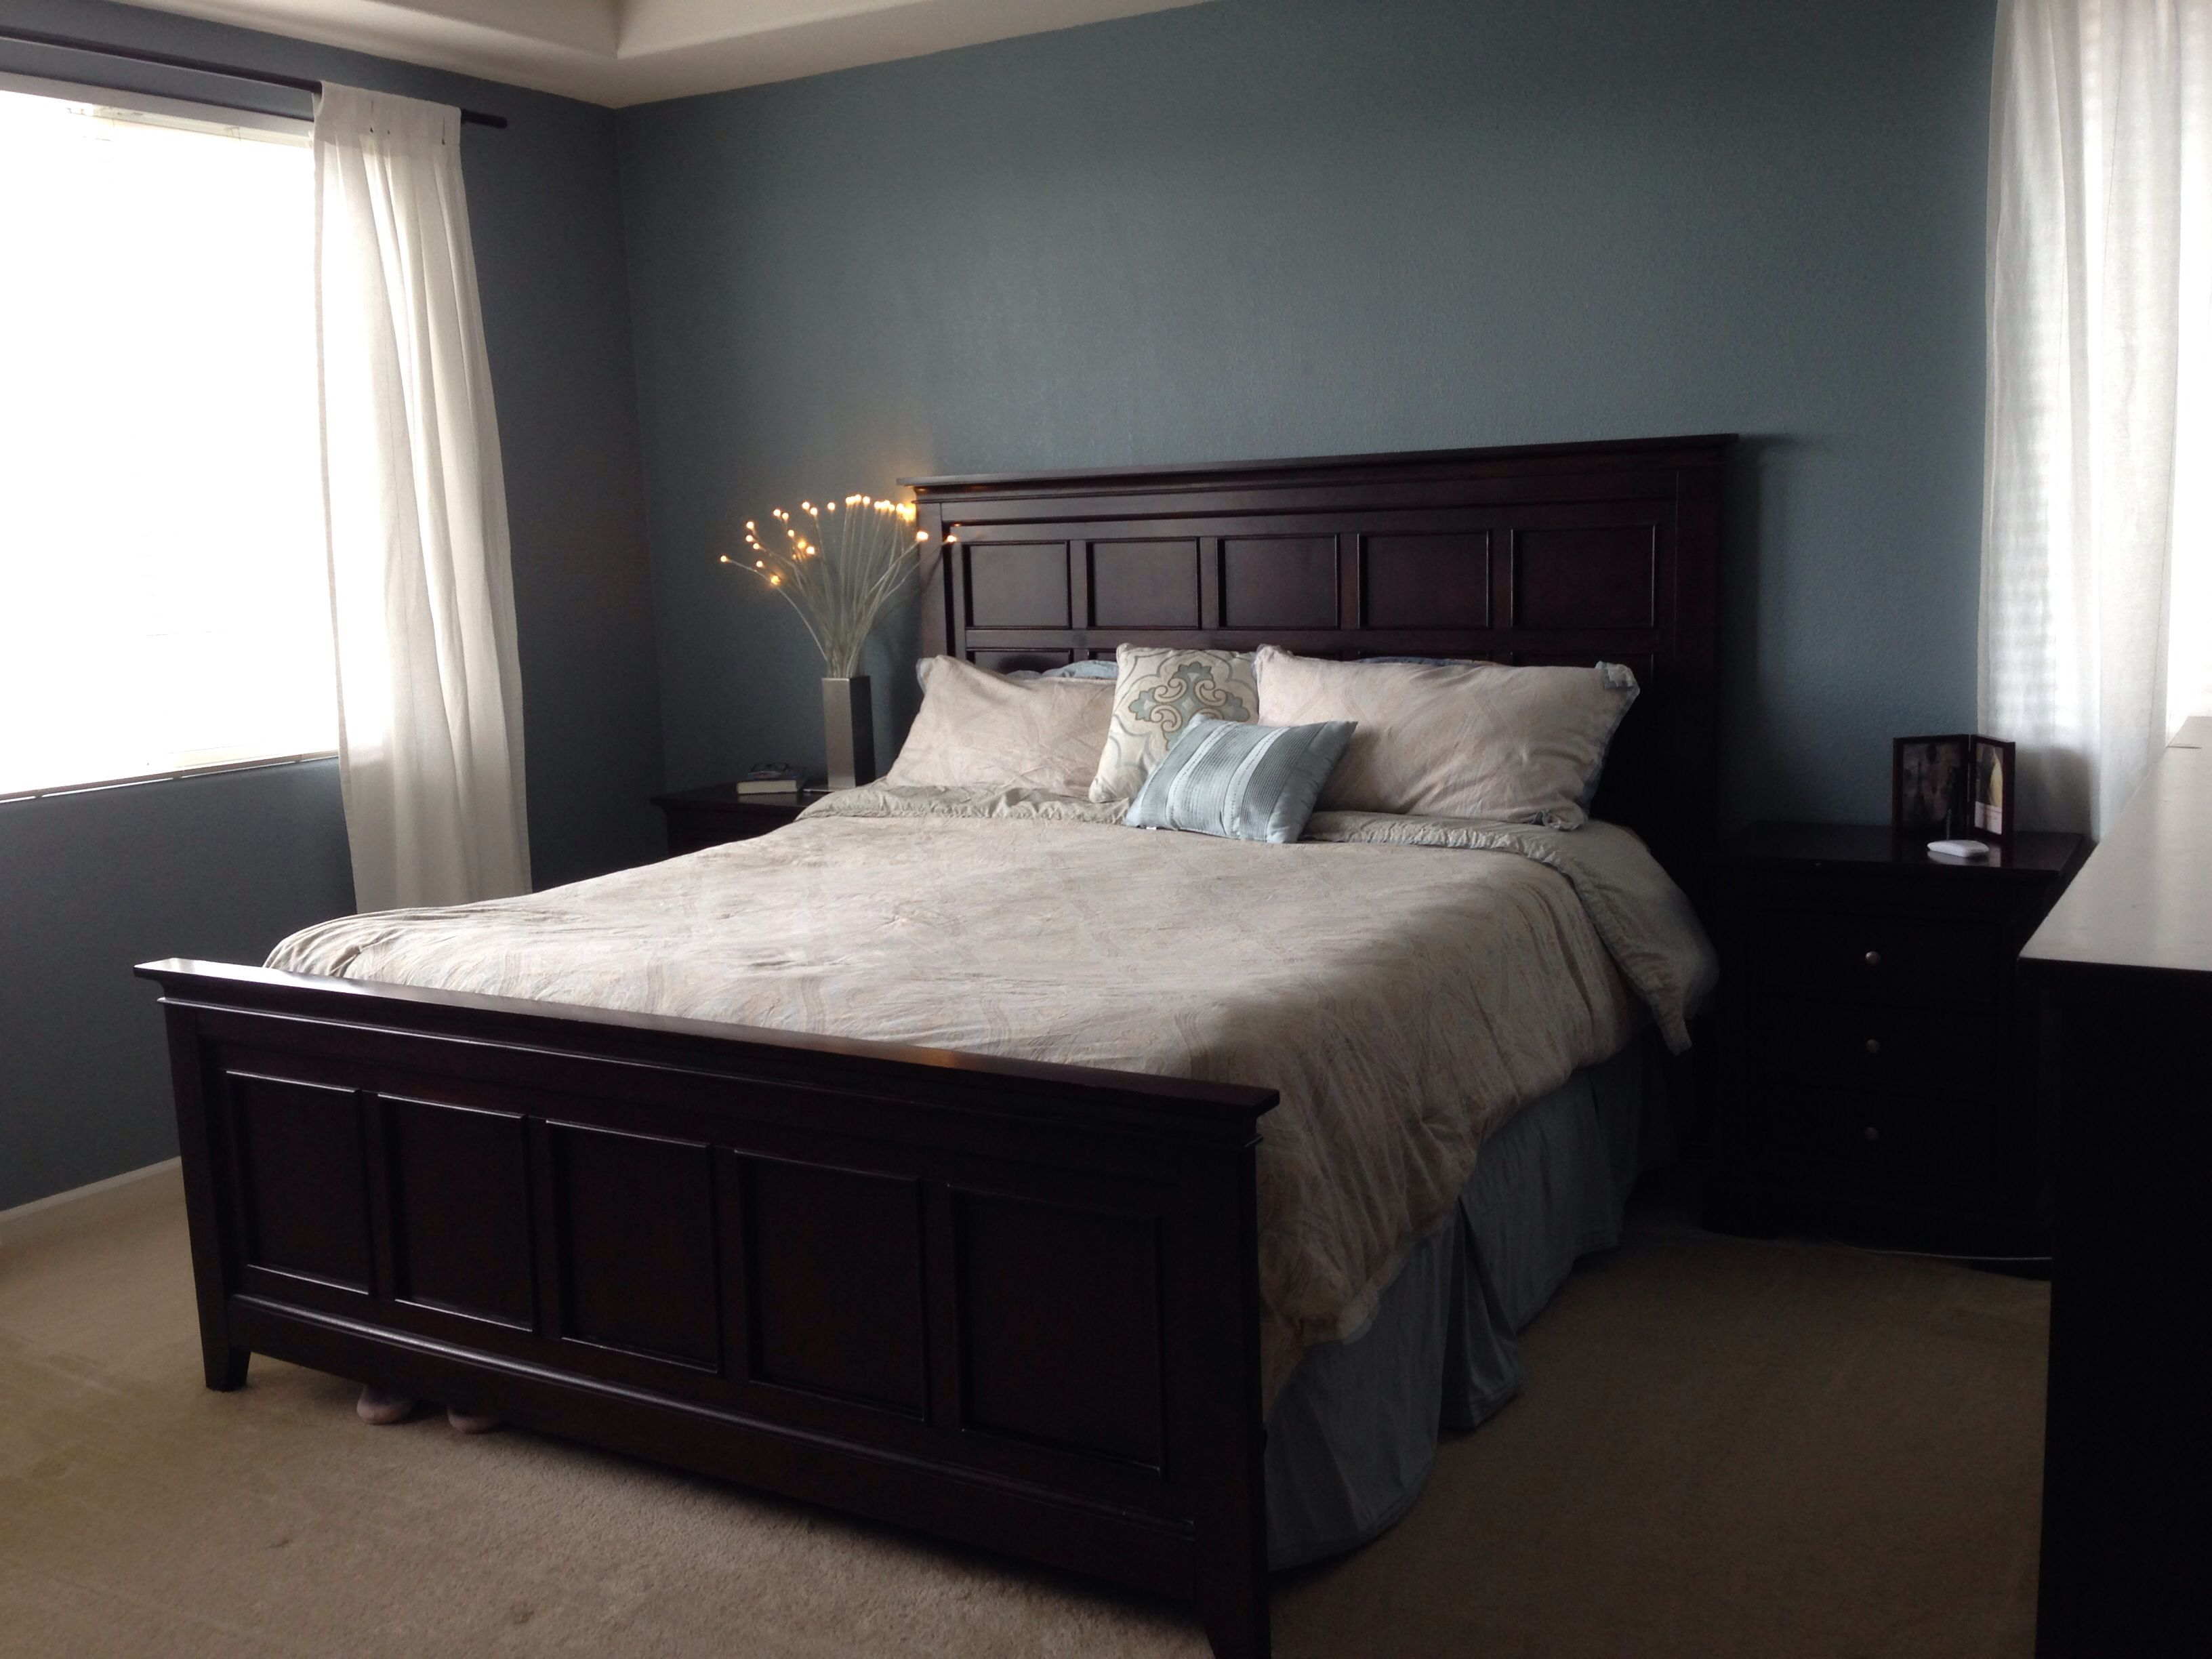 valspar blue twilight just painted our room and i love 13707 | f6e15f5187ae569fd8166a93f8f03fd5